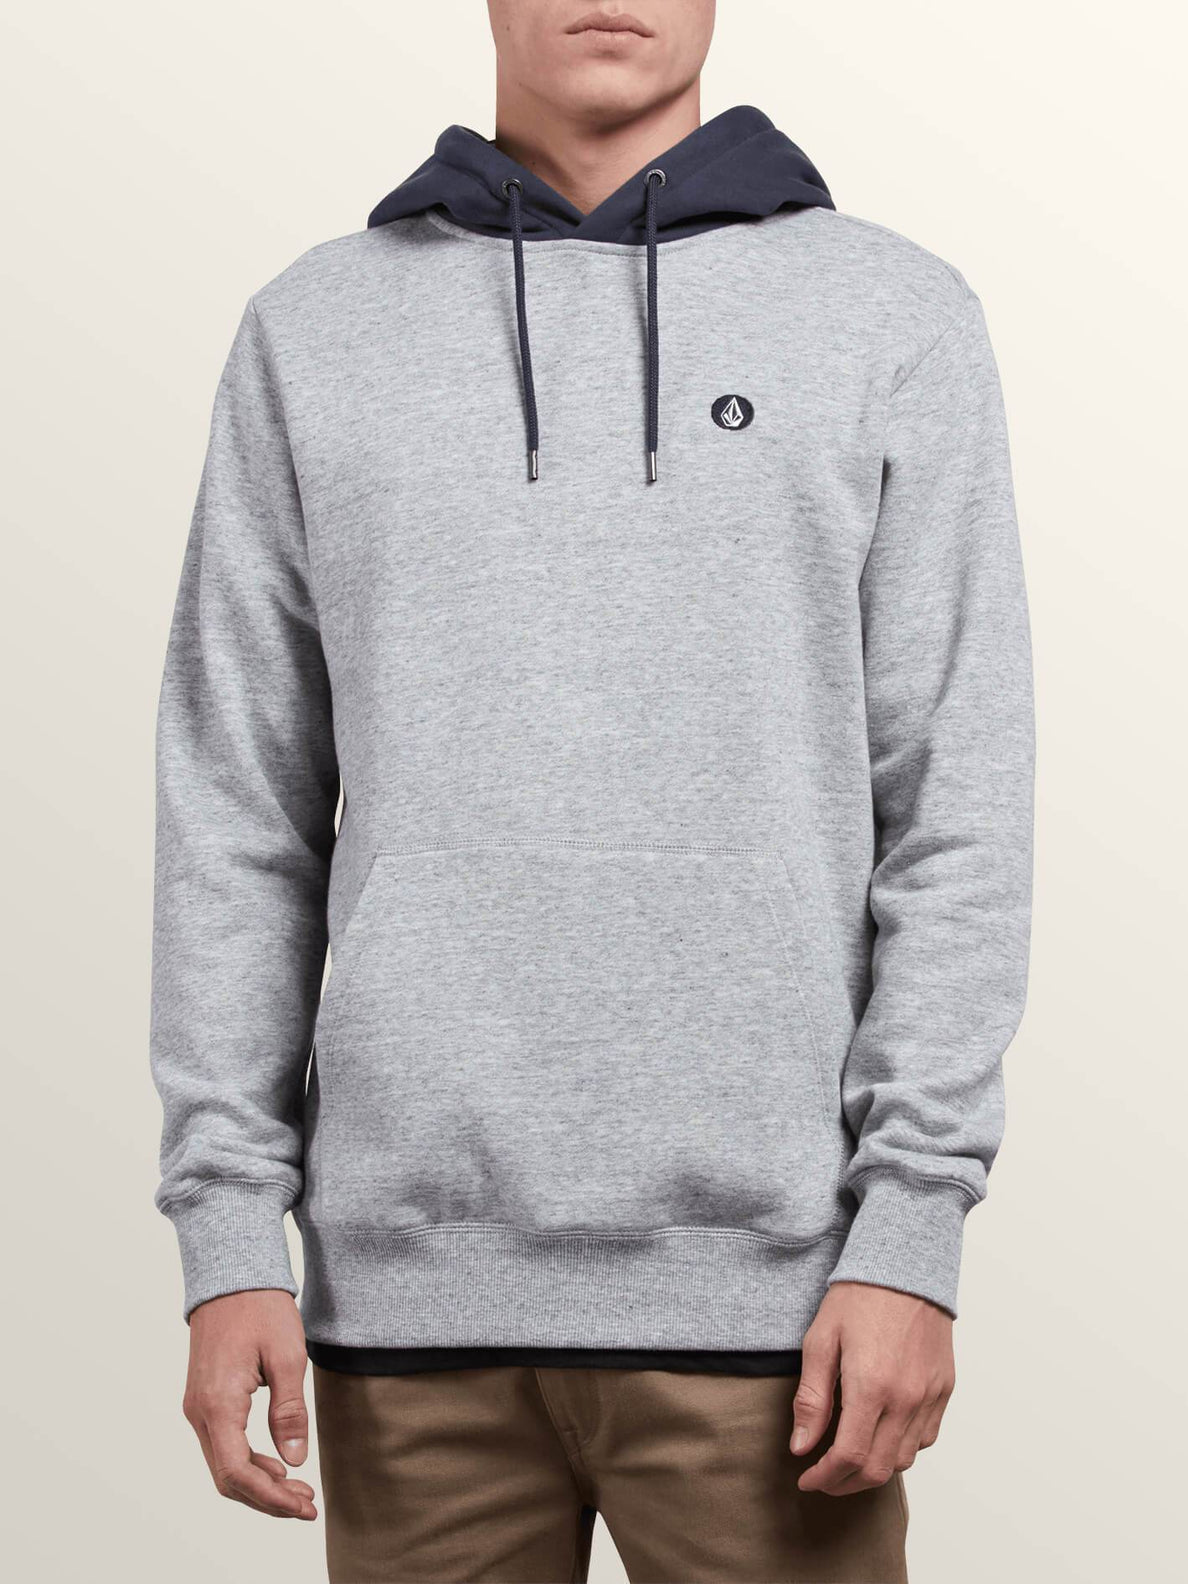 Single Stone Pullover Hoodie - Storm